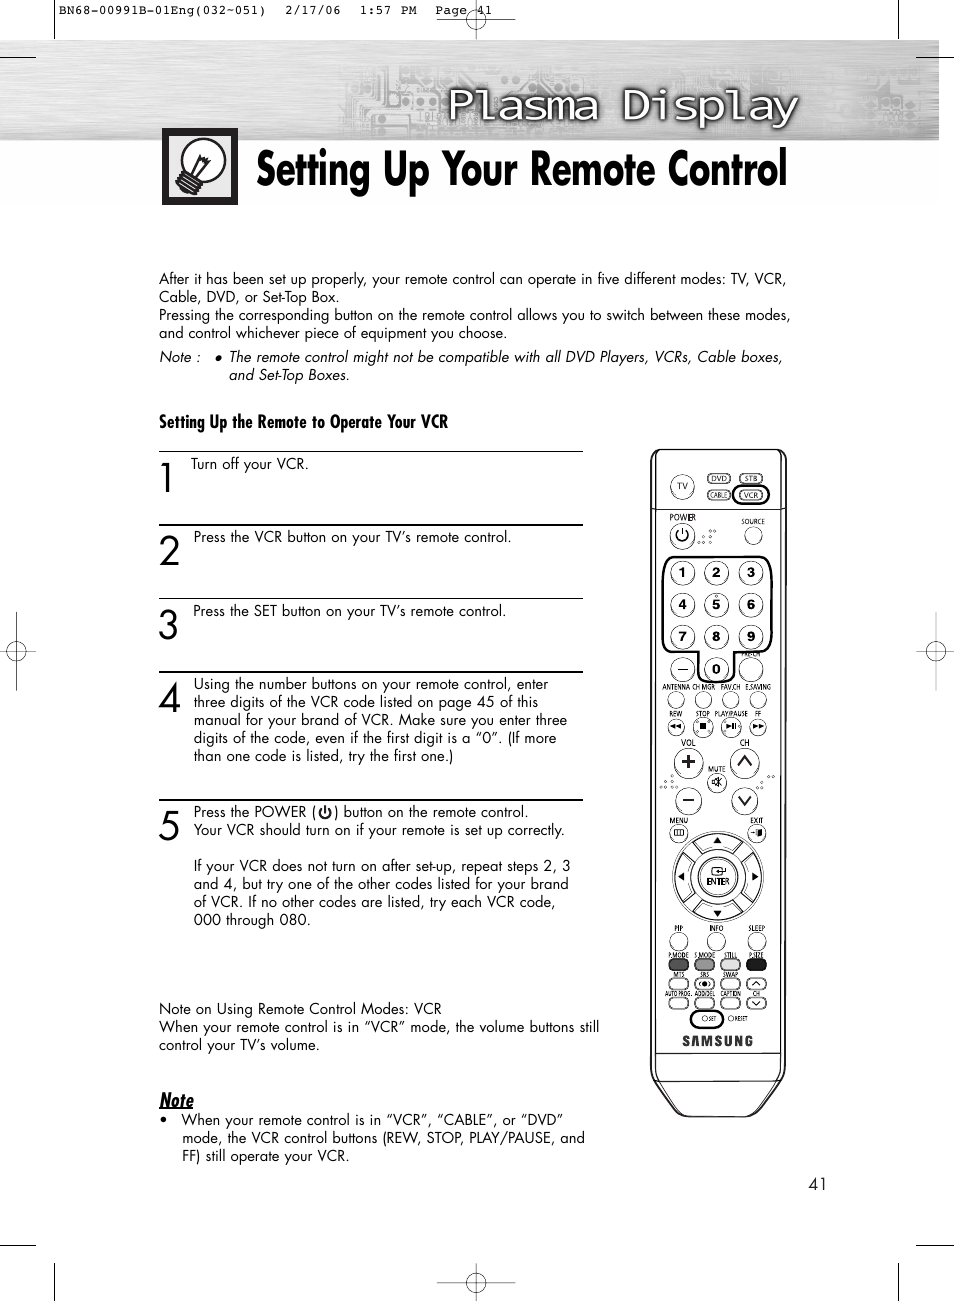 Setting up your remote control | Samsung HPS4253X-XAP User